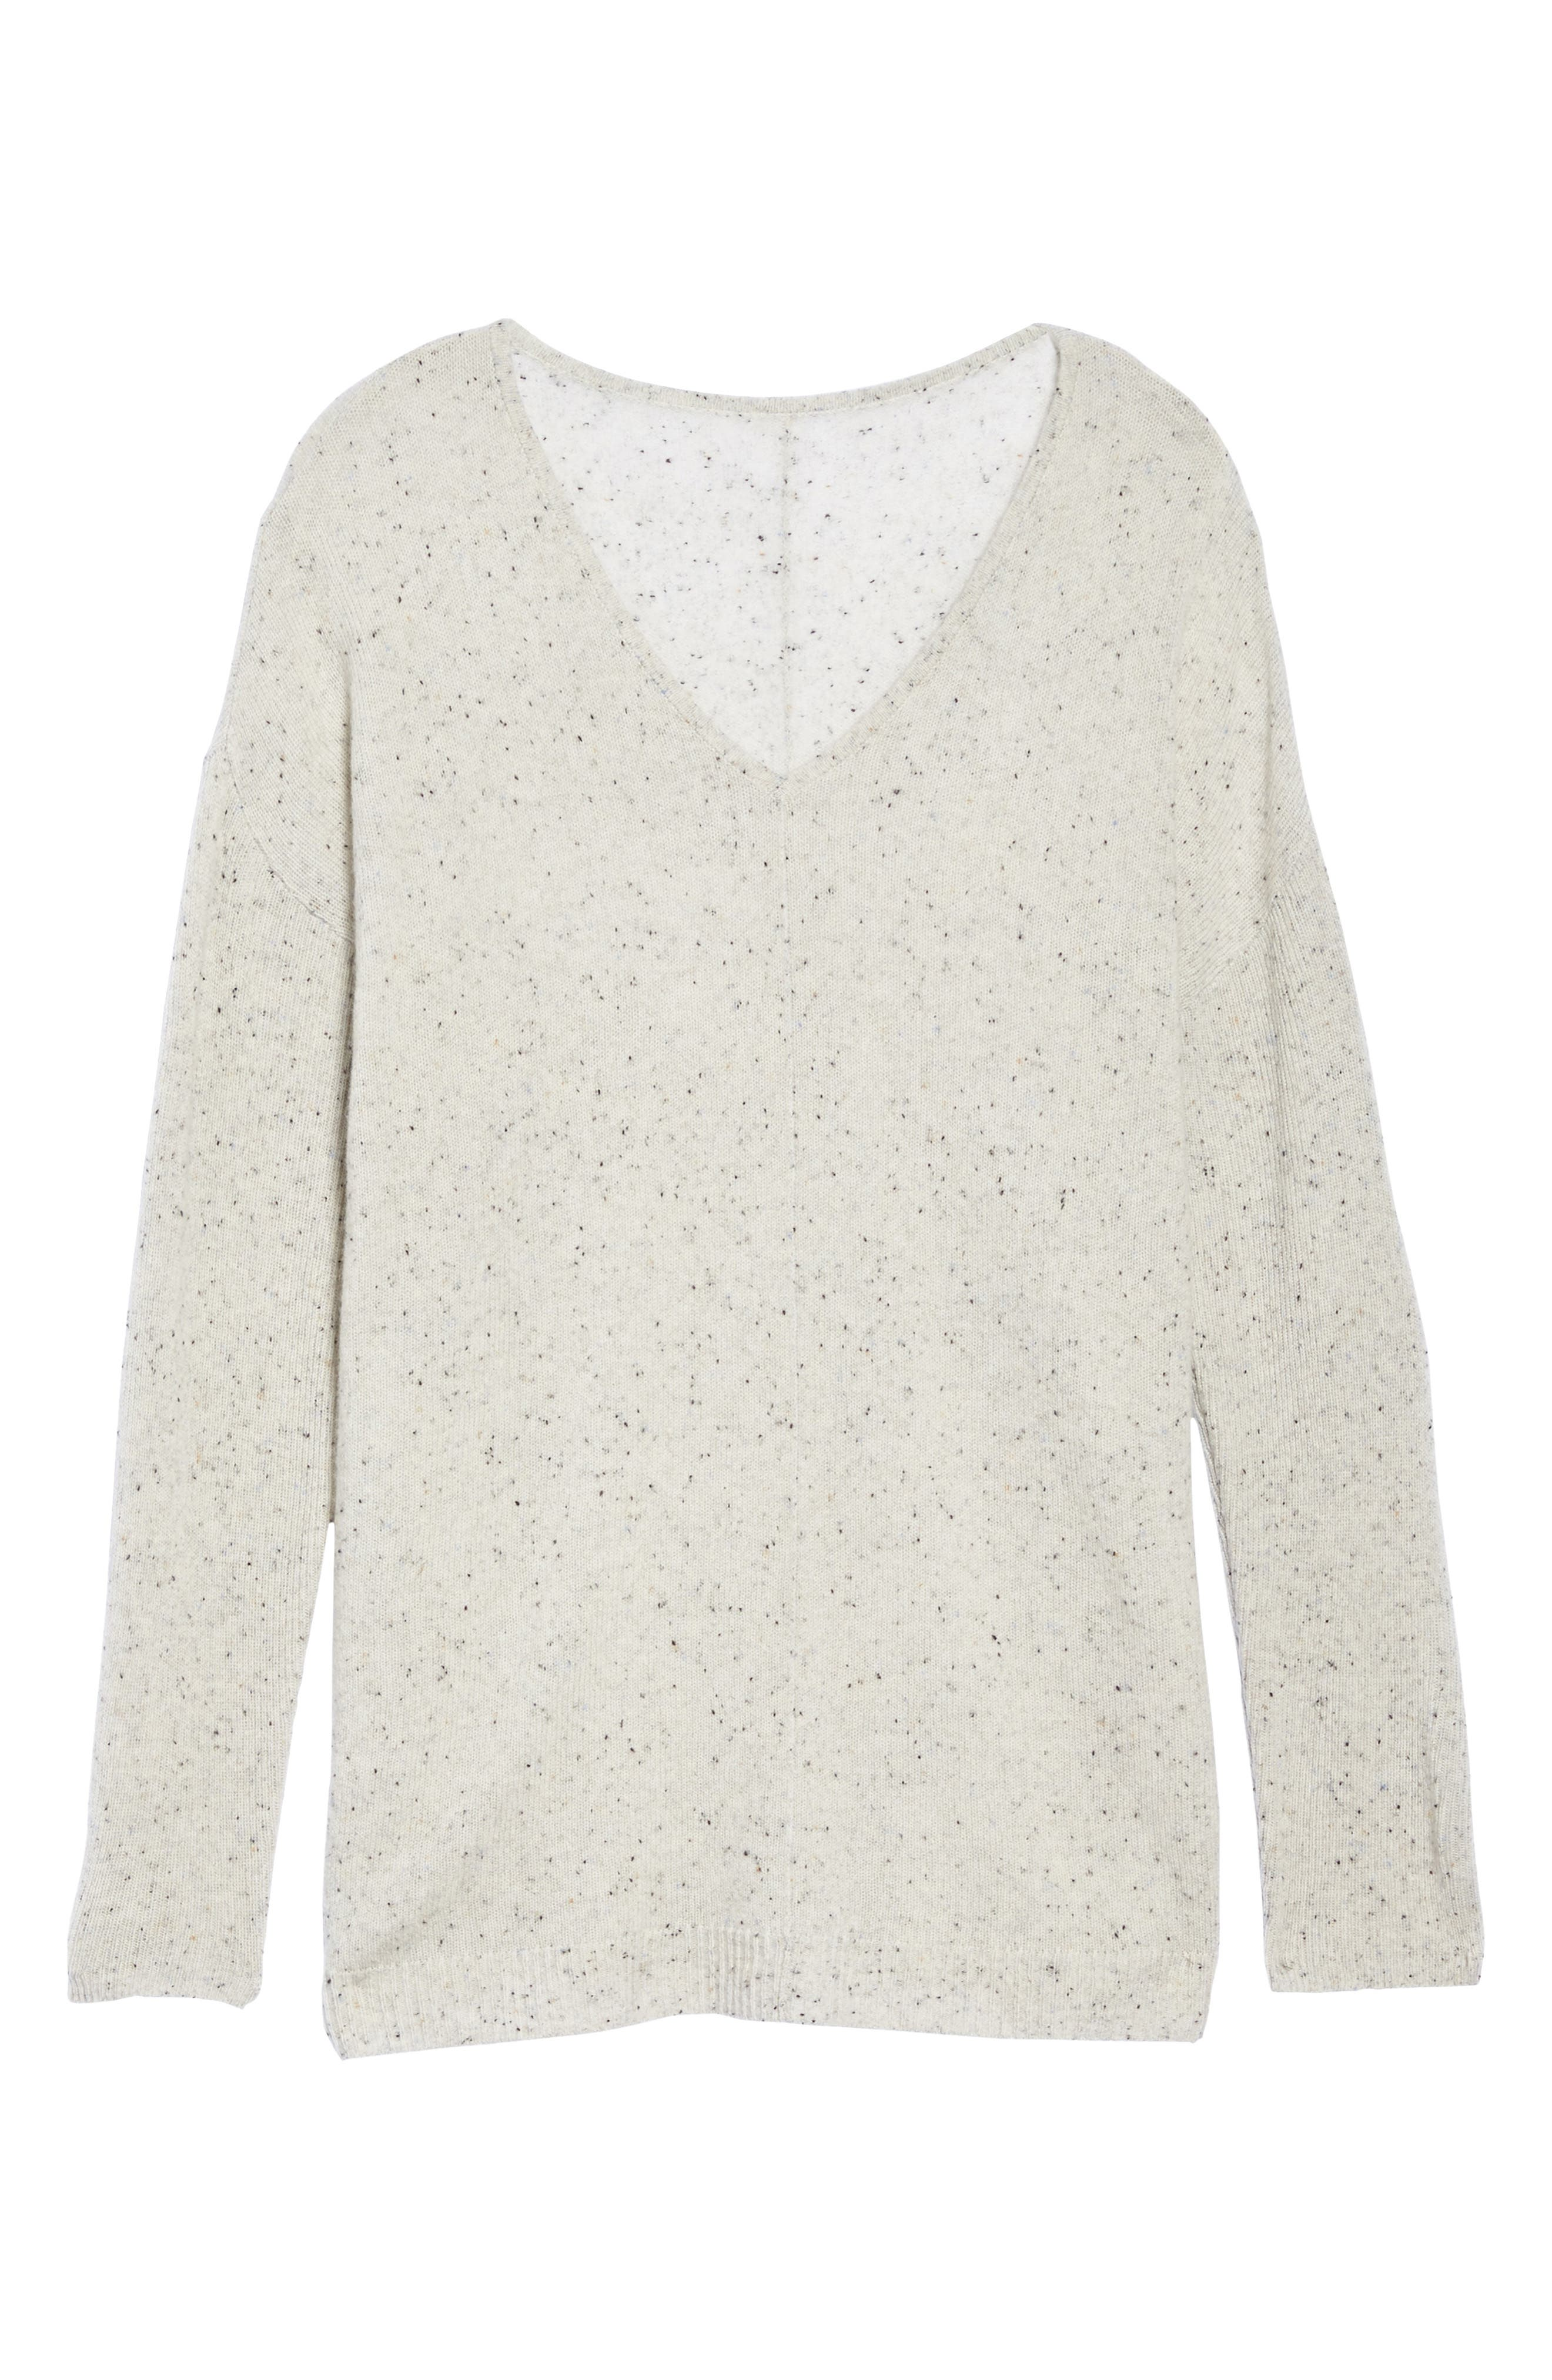 Easy V-Neck Wool & Cashmere Pullover,                             Alternate thumbnail 6, color,                             Grey Light Heather